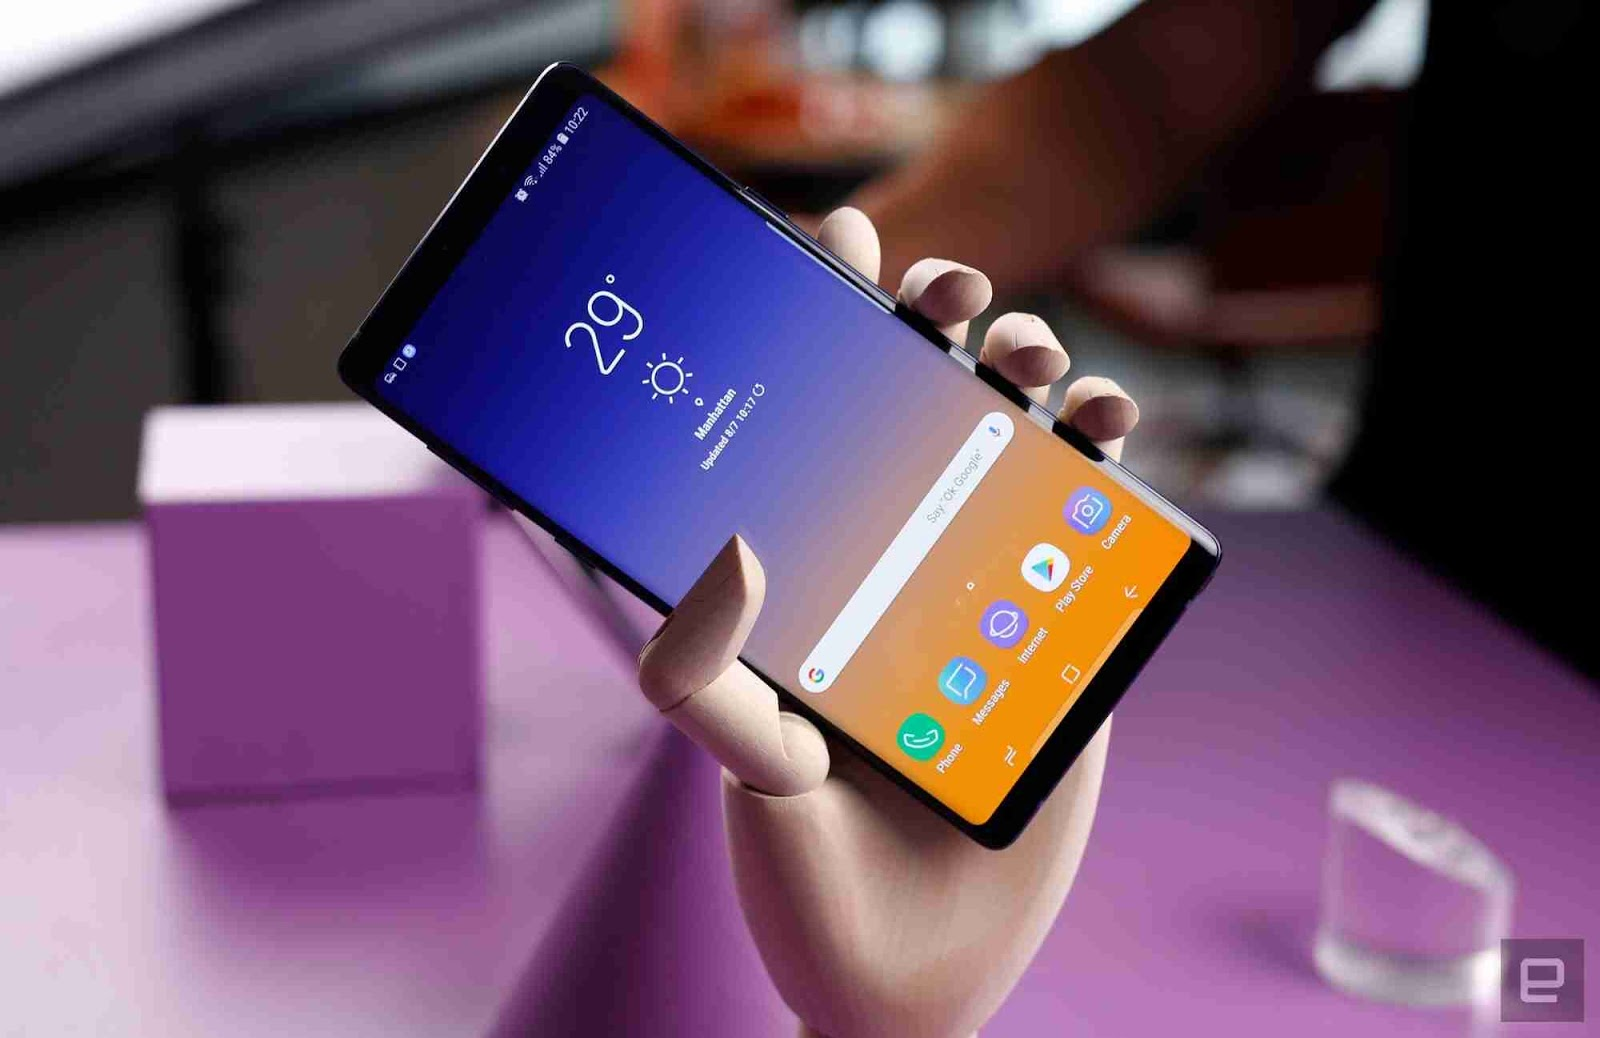 The Samsung Galaxy Note 9 Vs The Galaxy Note 8 Processor, RAM and Storage.